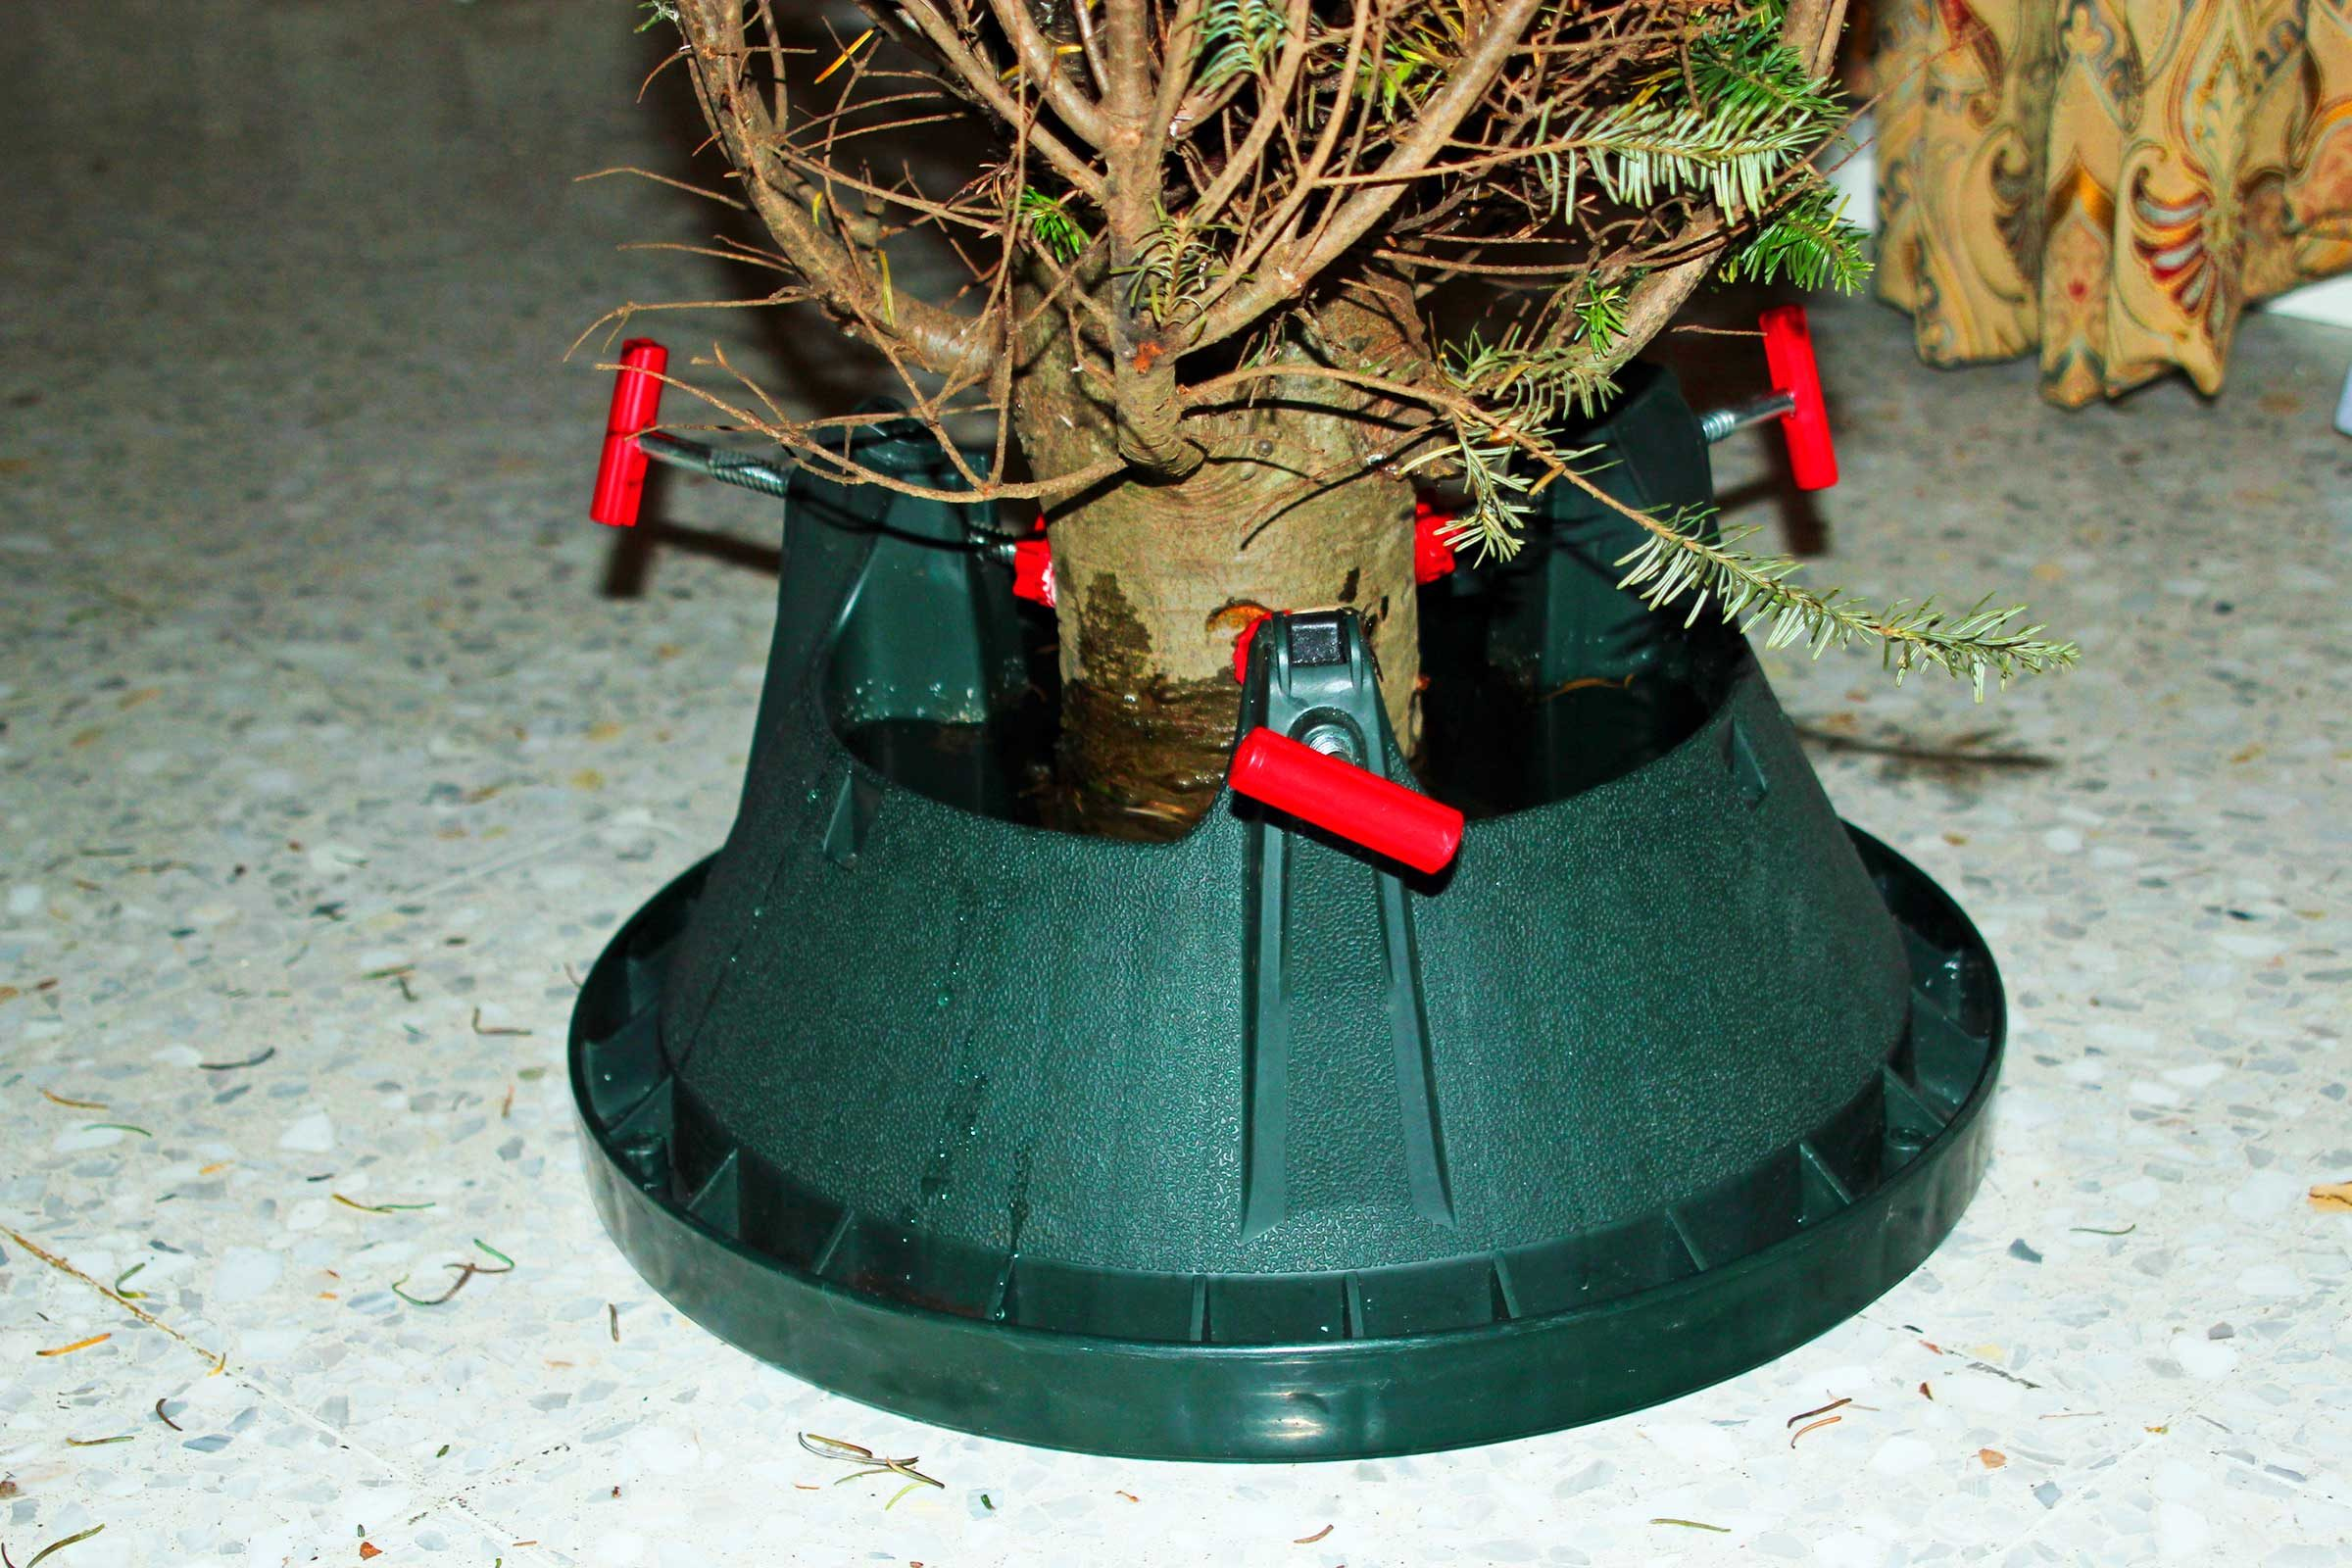 How To Take Care Of A Real Christmas Tree.Christmas Tree Secrets What Your Tree Wishes You Knew